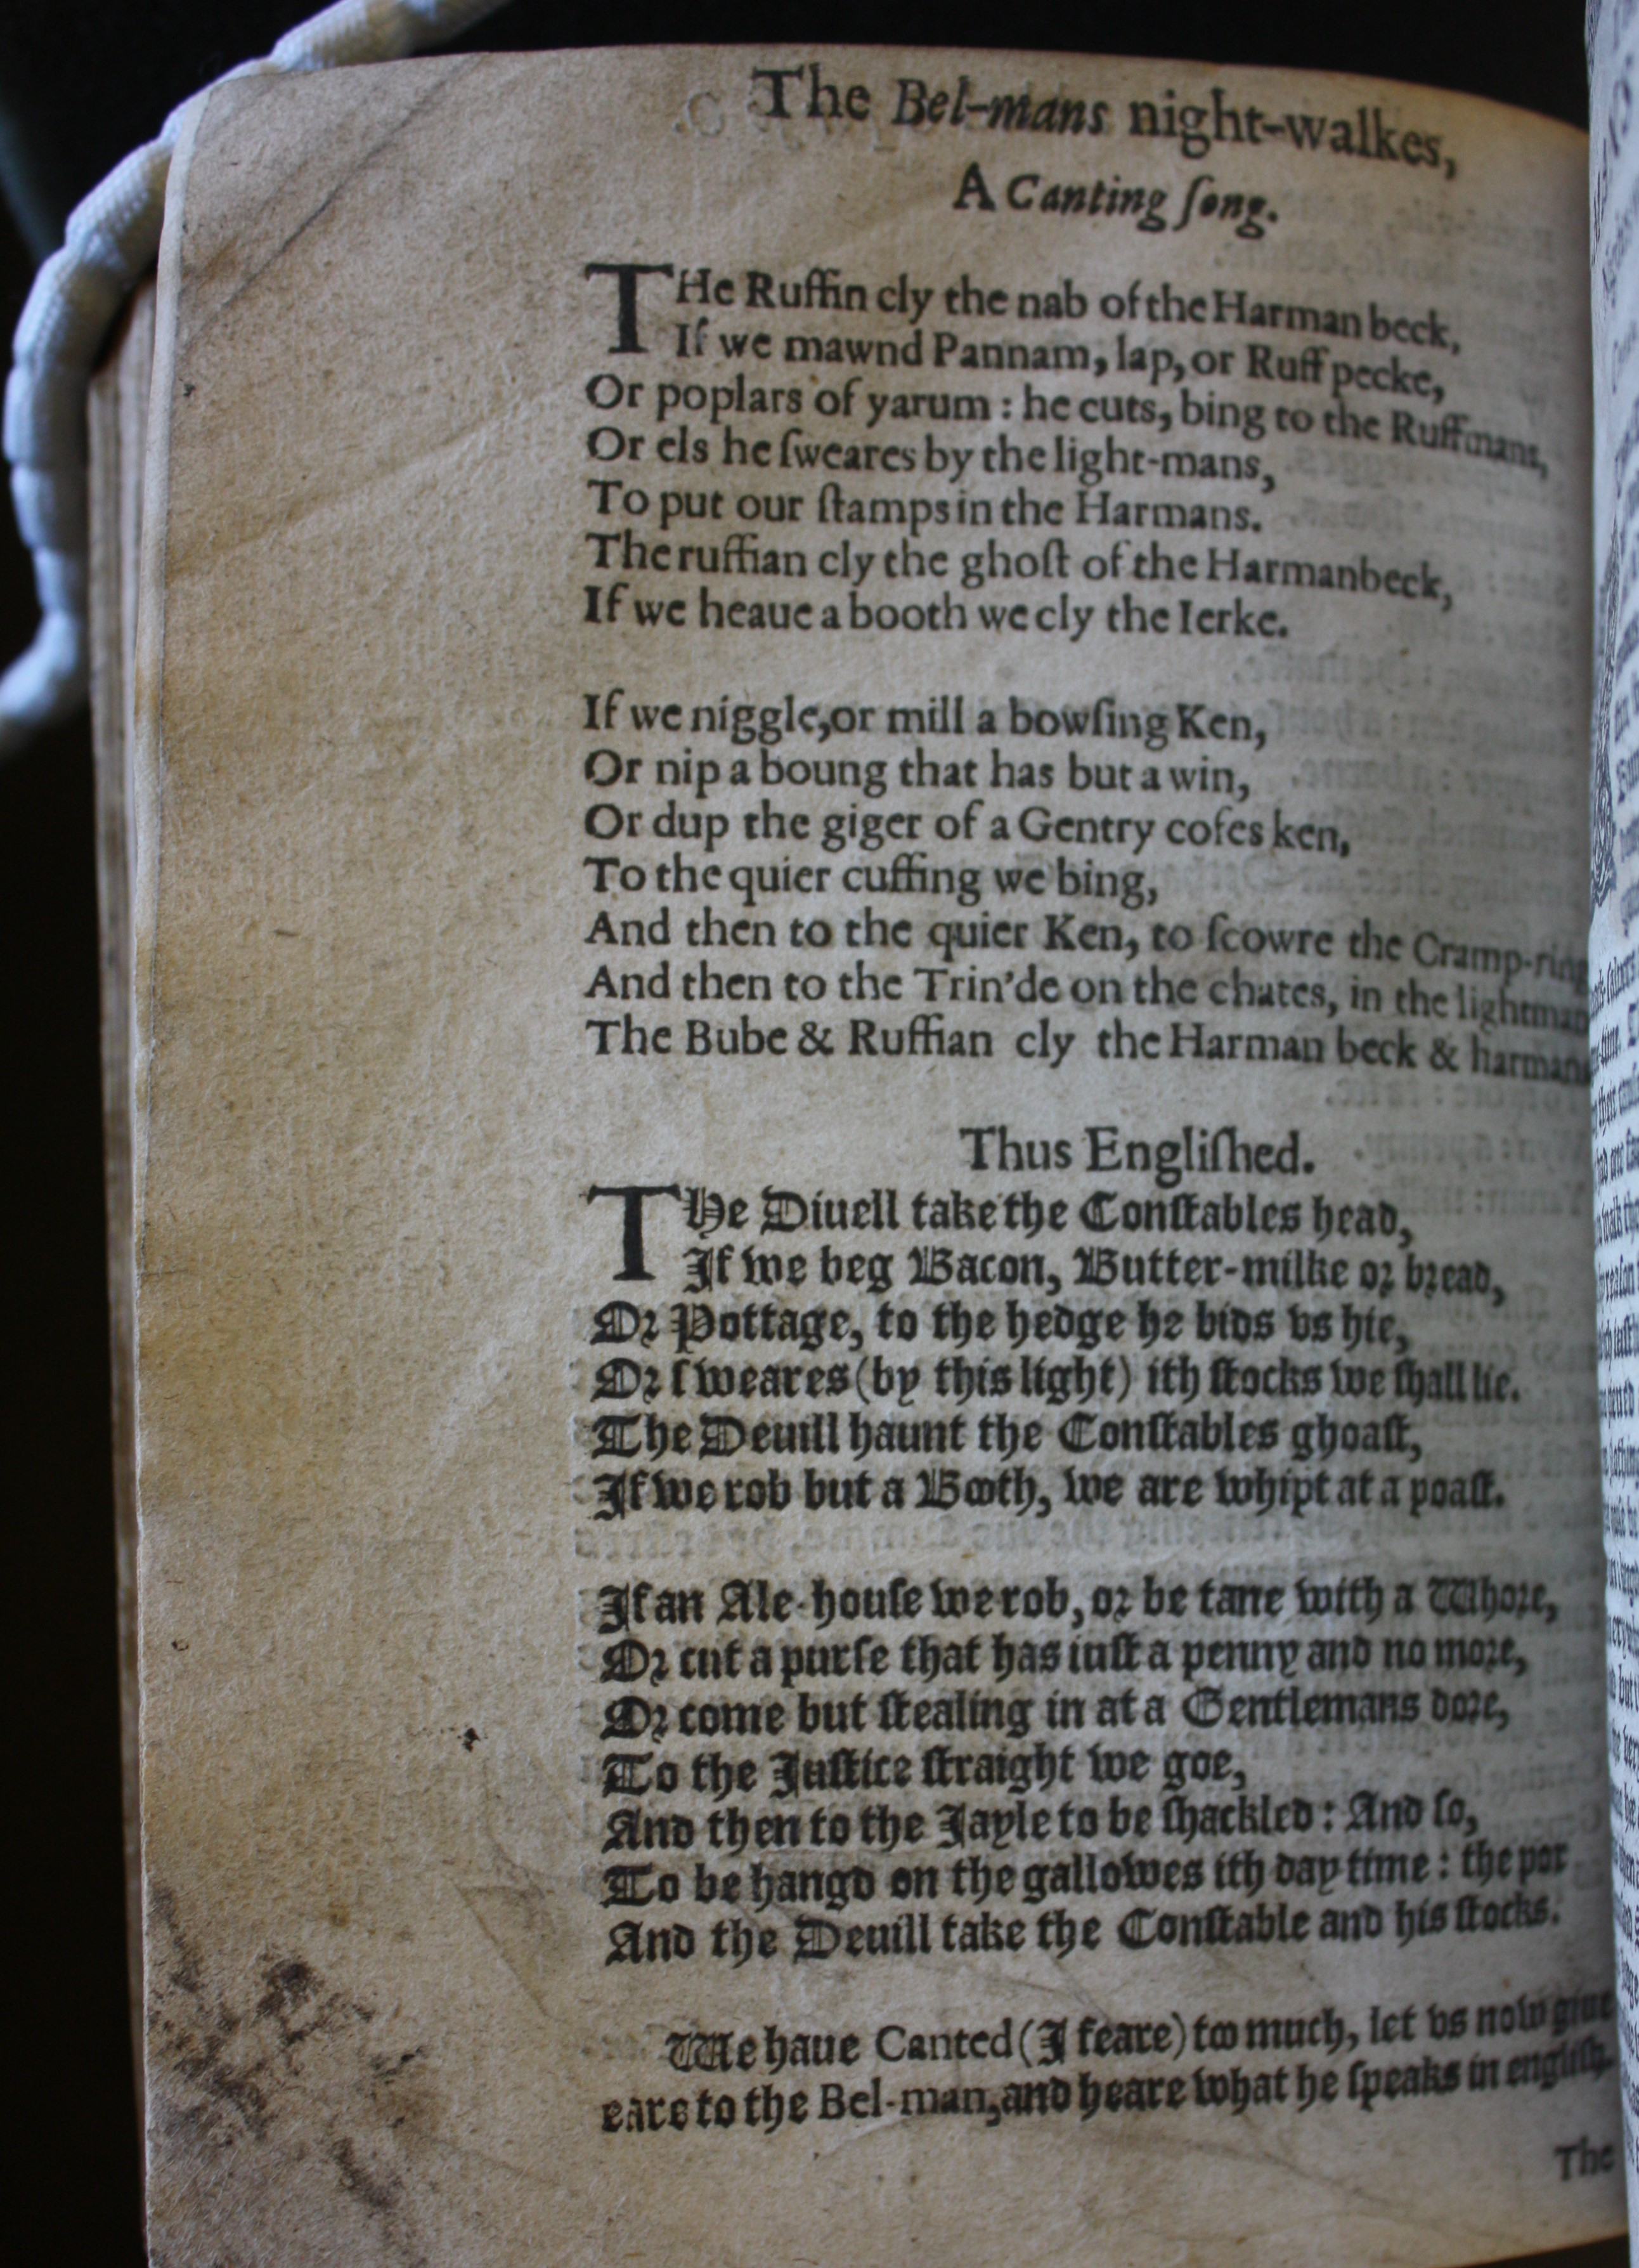 Page showing a poem in Cant and translated into English